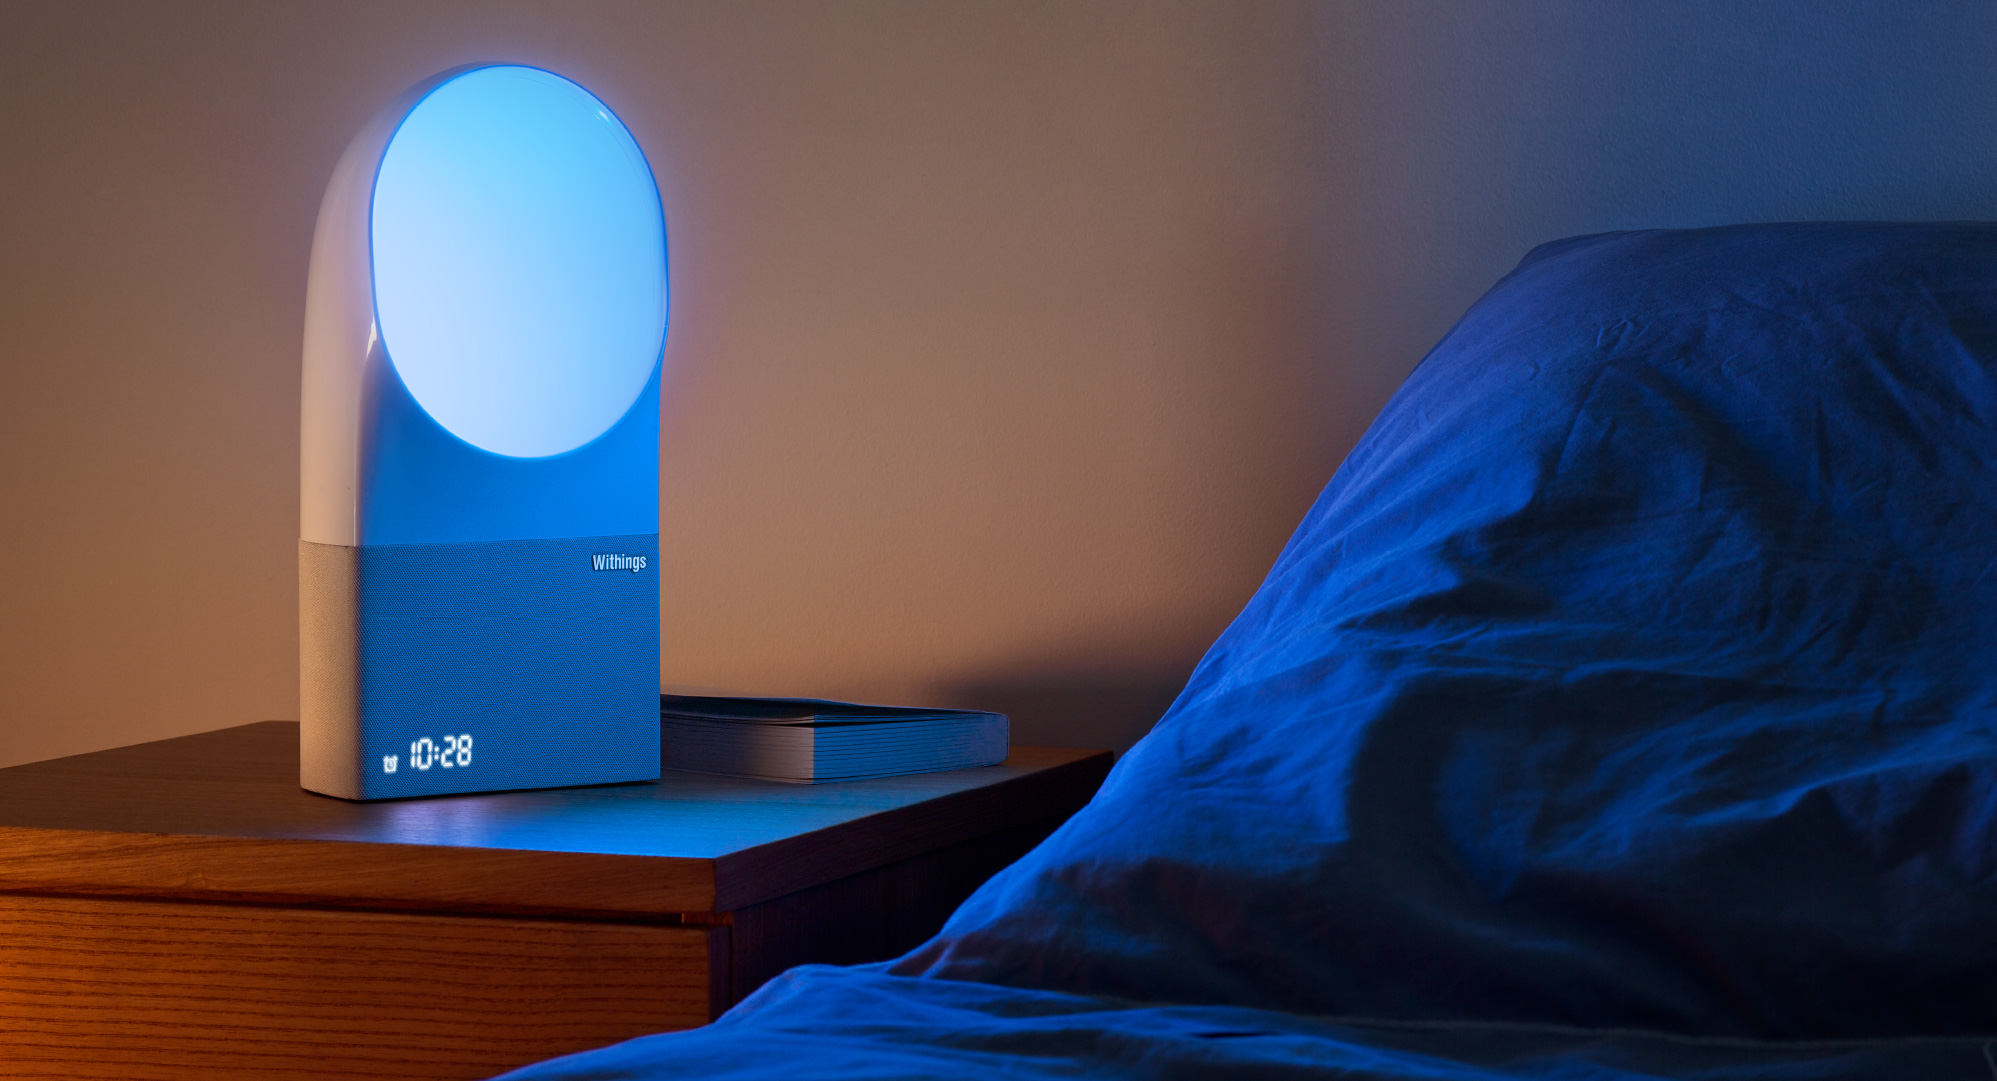 Withings Aura e dormi sogni tranquilli